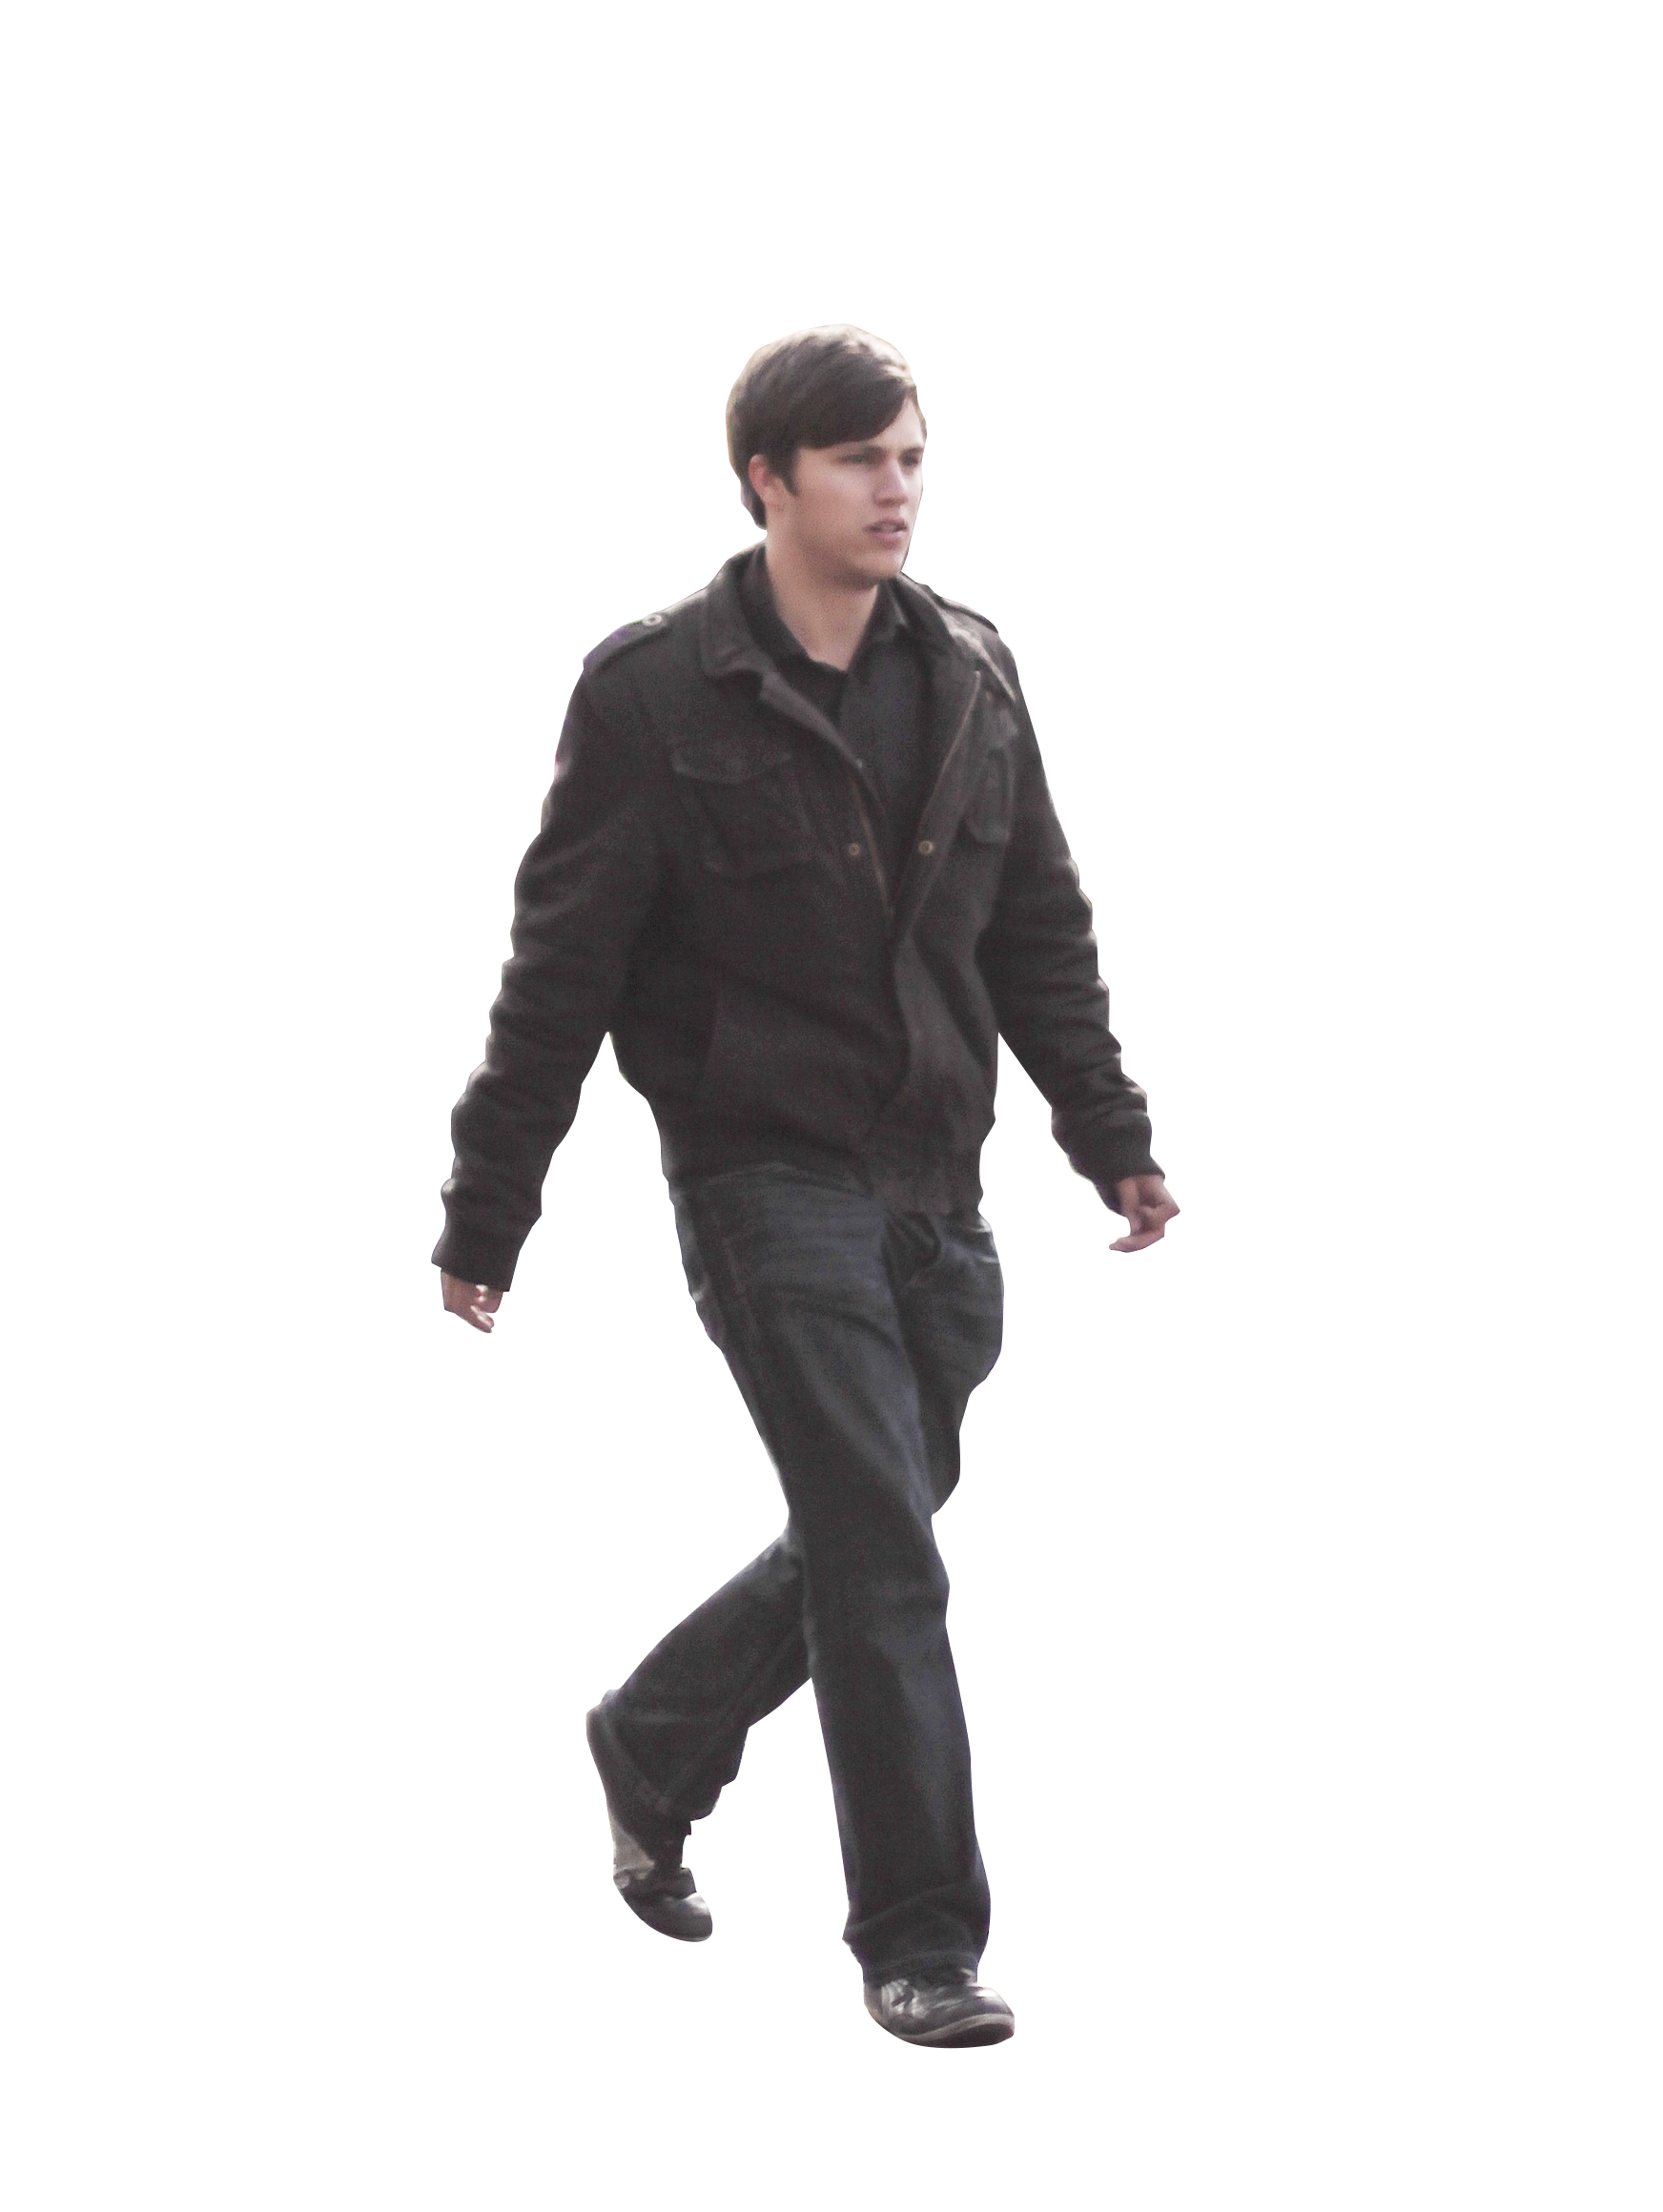 Transparent personality cutout. Walking people nta person